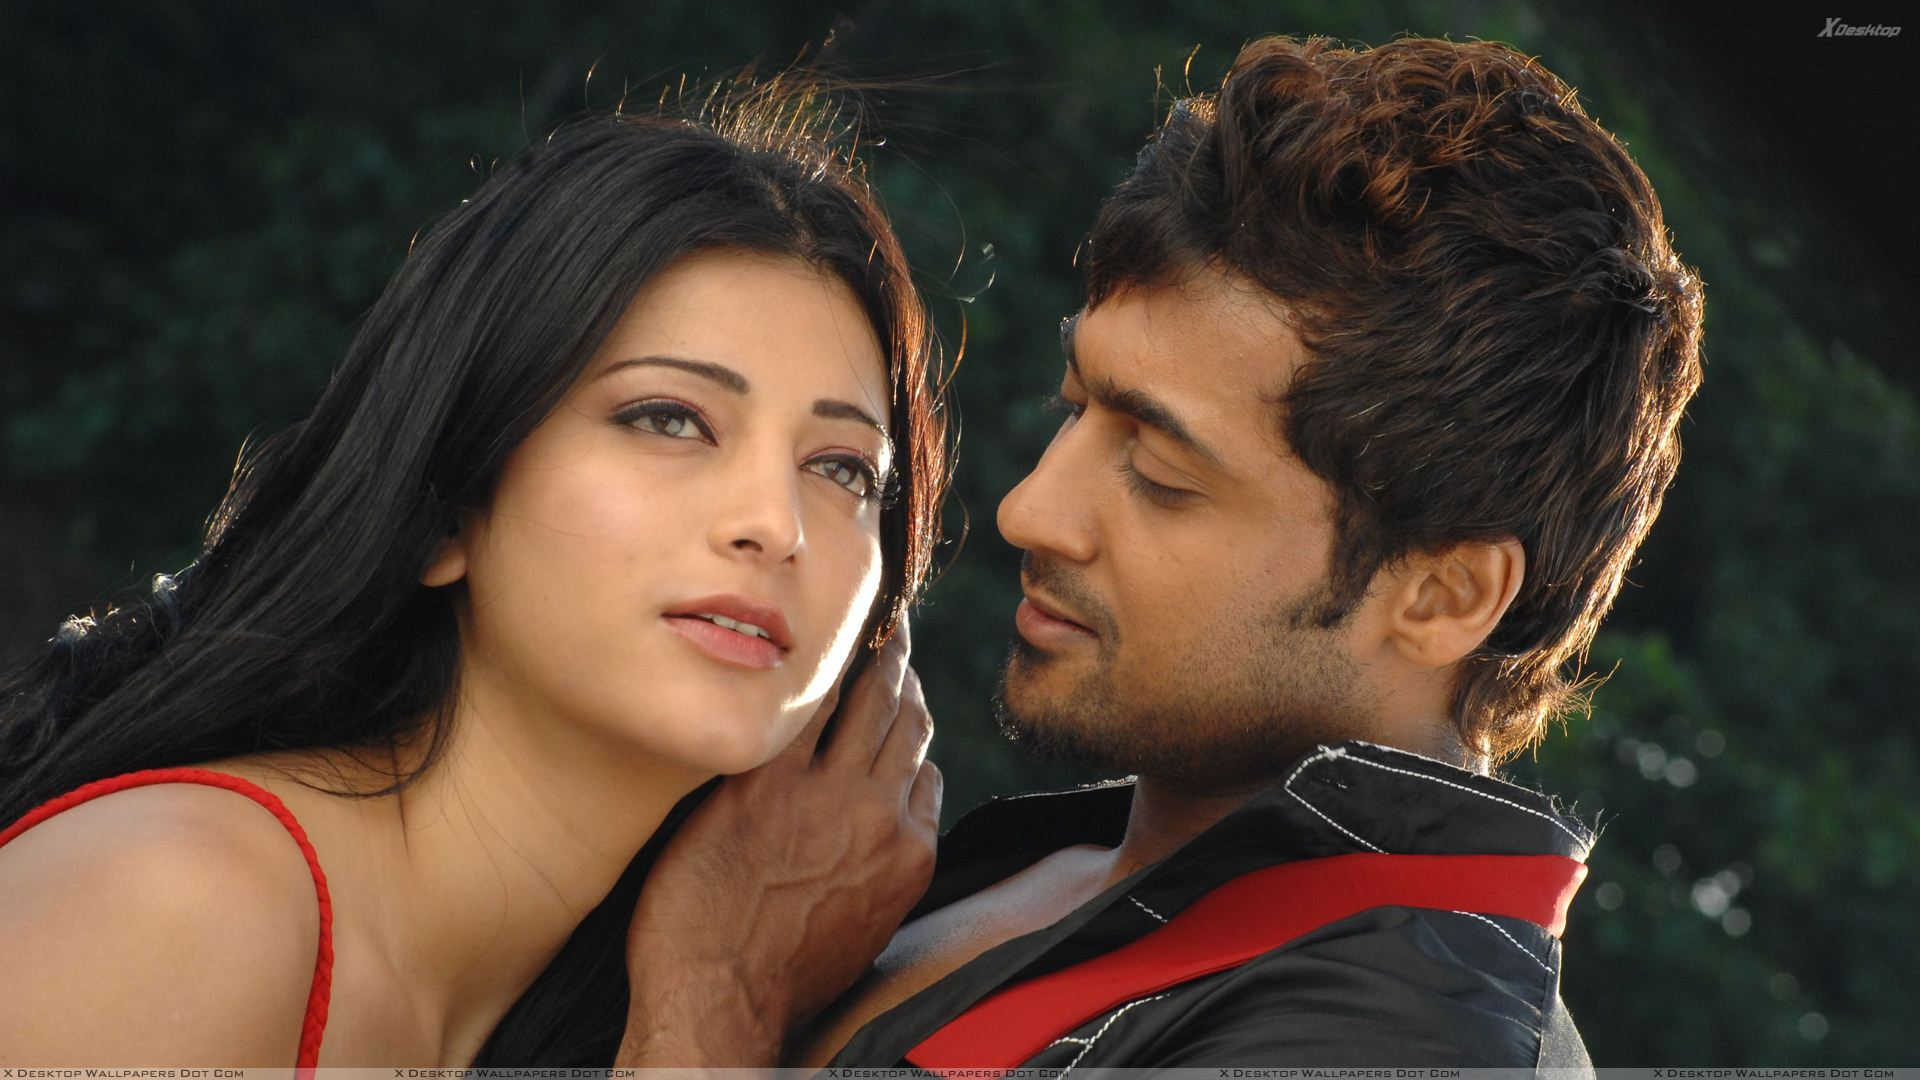 shruti haasan and surya romantic photoshoot 7aum arivu movie wallpaper